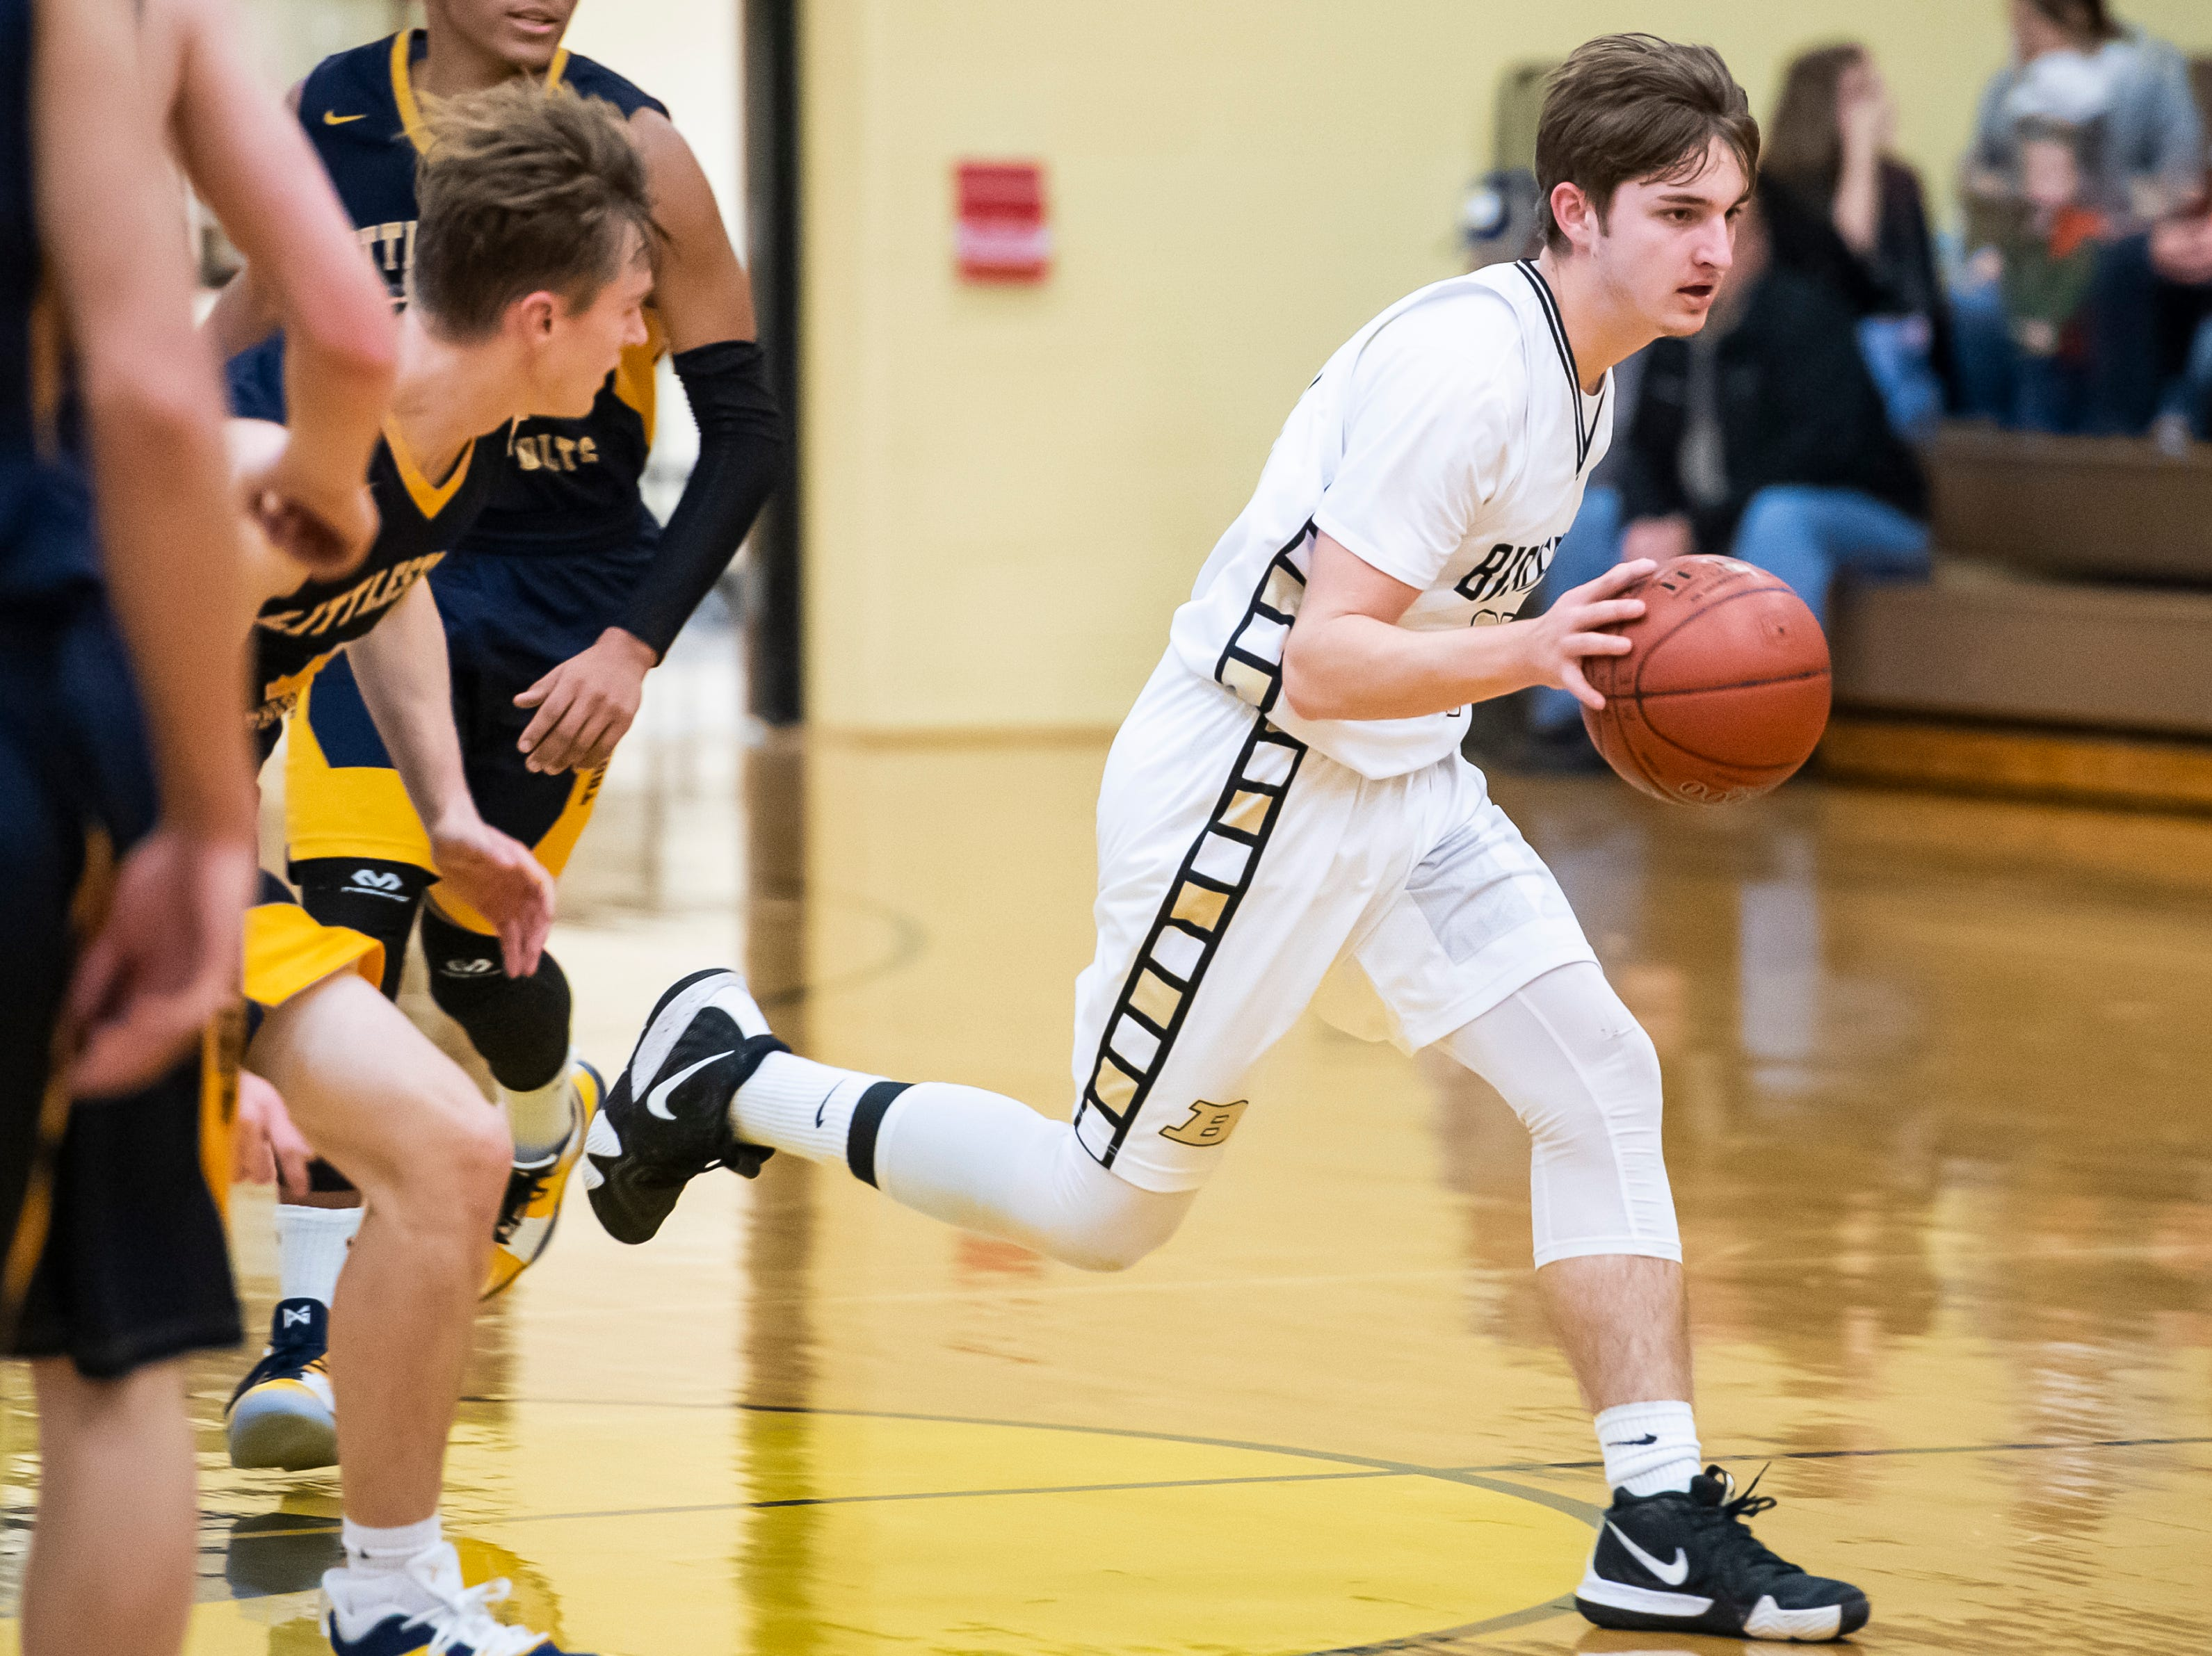 Biglerville's Noah Weaver dribbles down the court during play against Littlestown on Friday, January 11, 2019. The Canners fell 65-38.